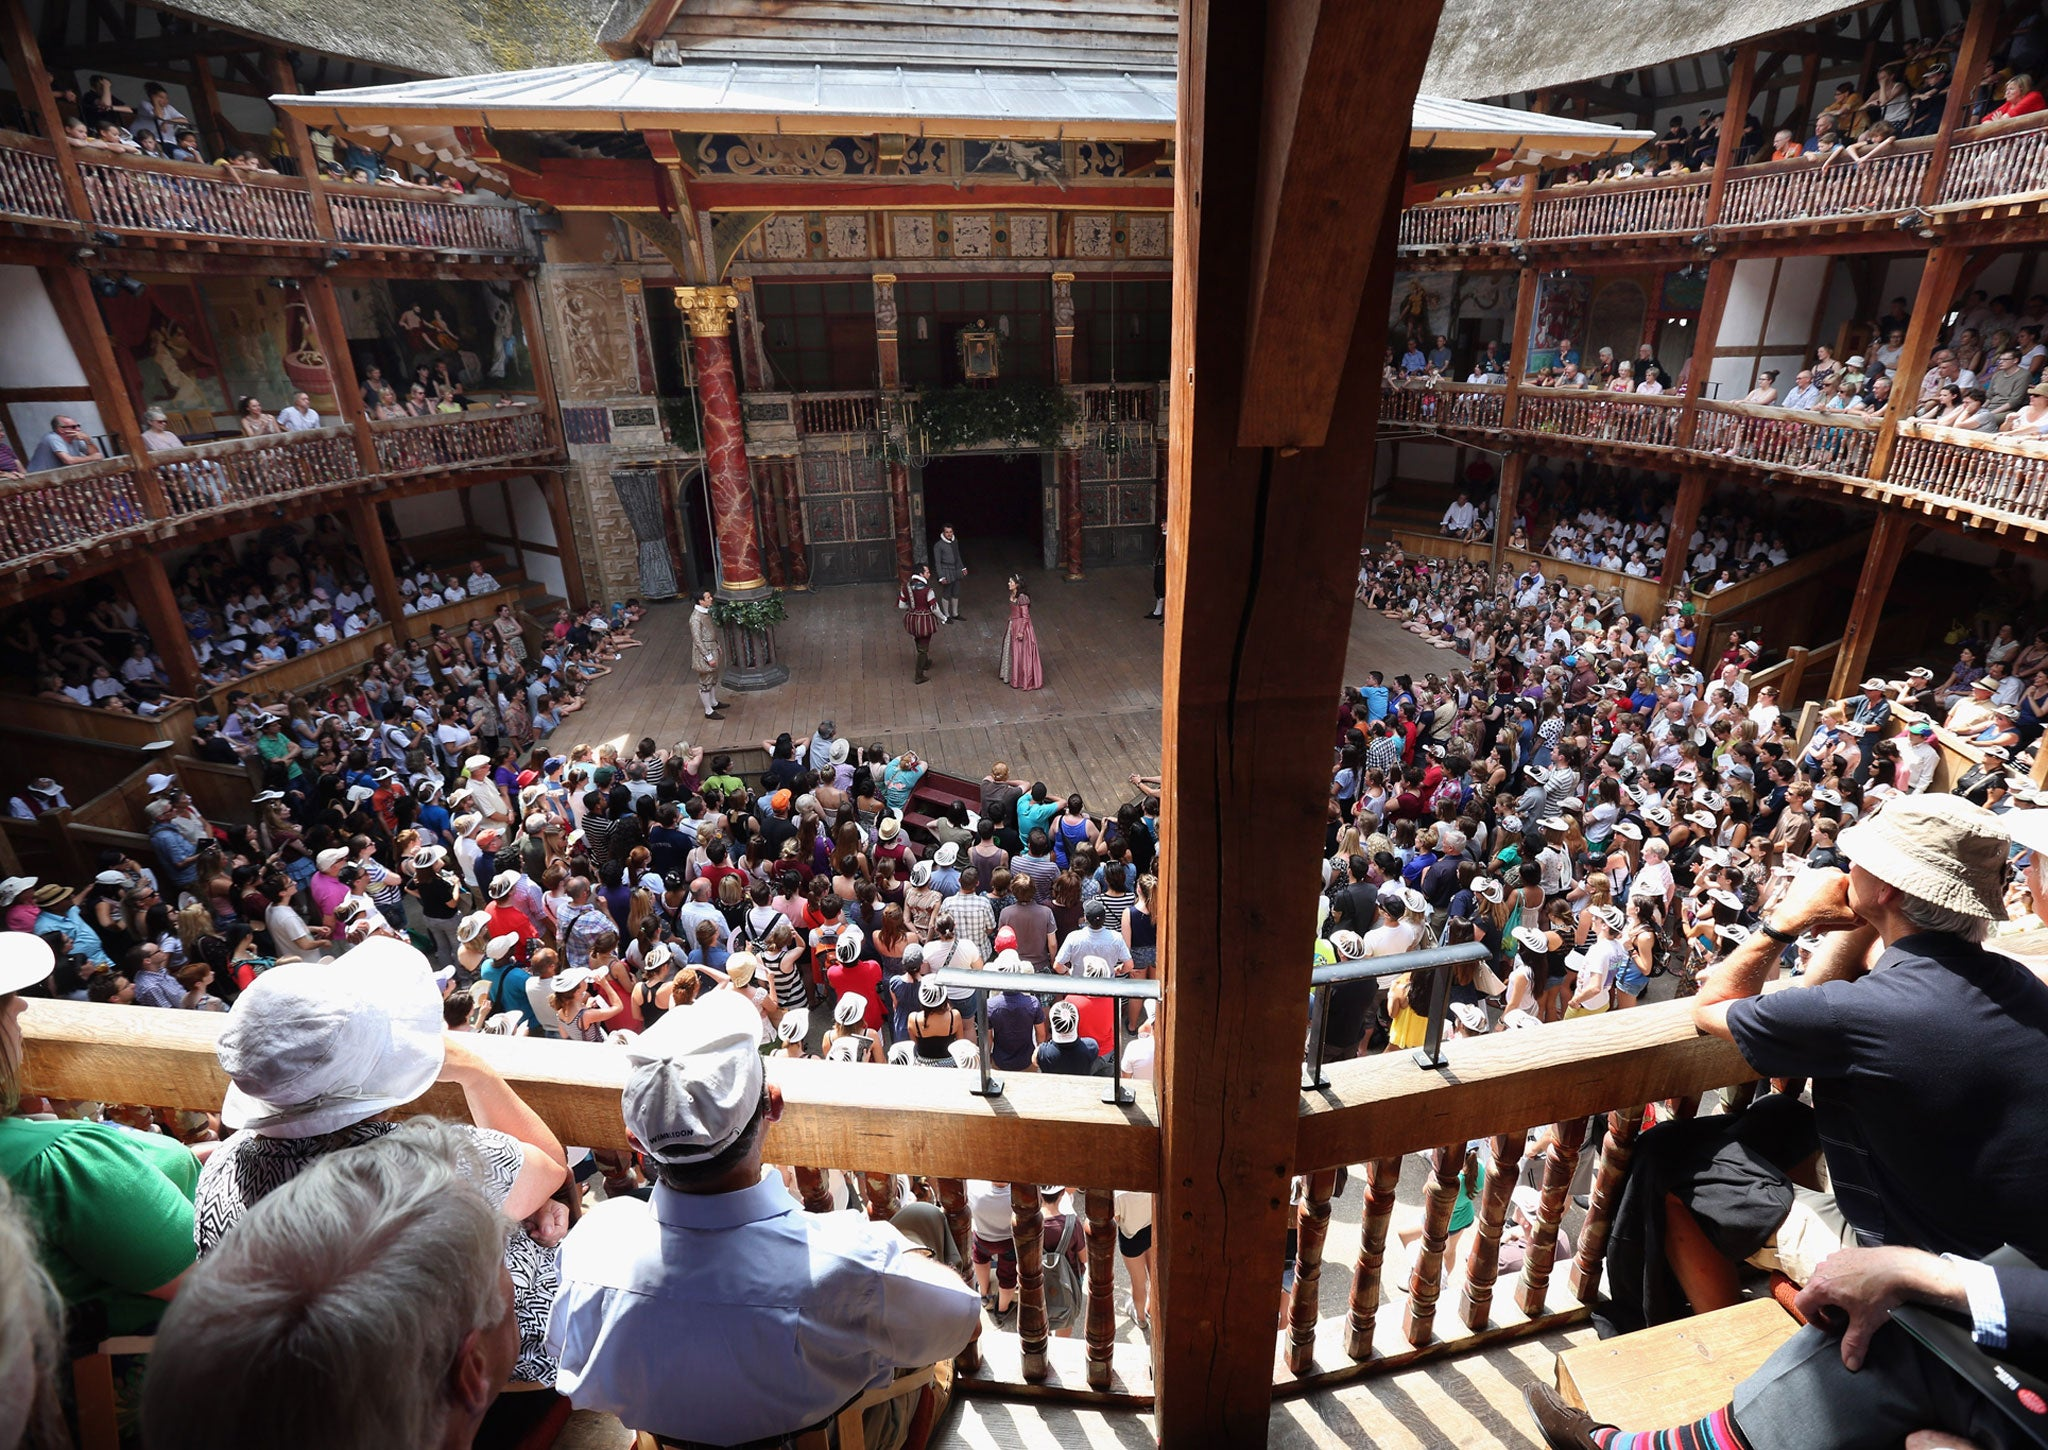 the history of the globe theater used in performance of shakespearean plays